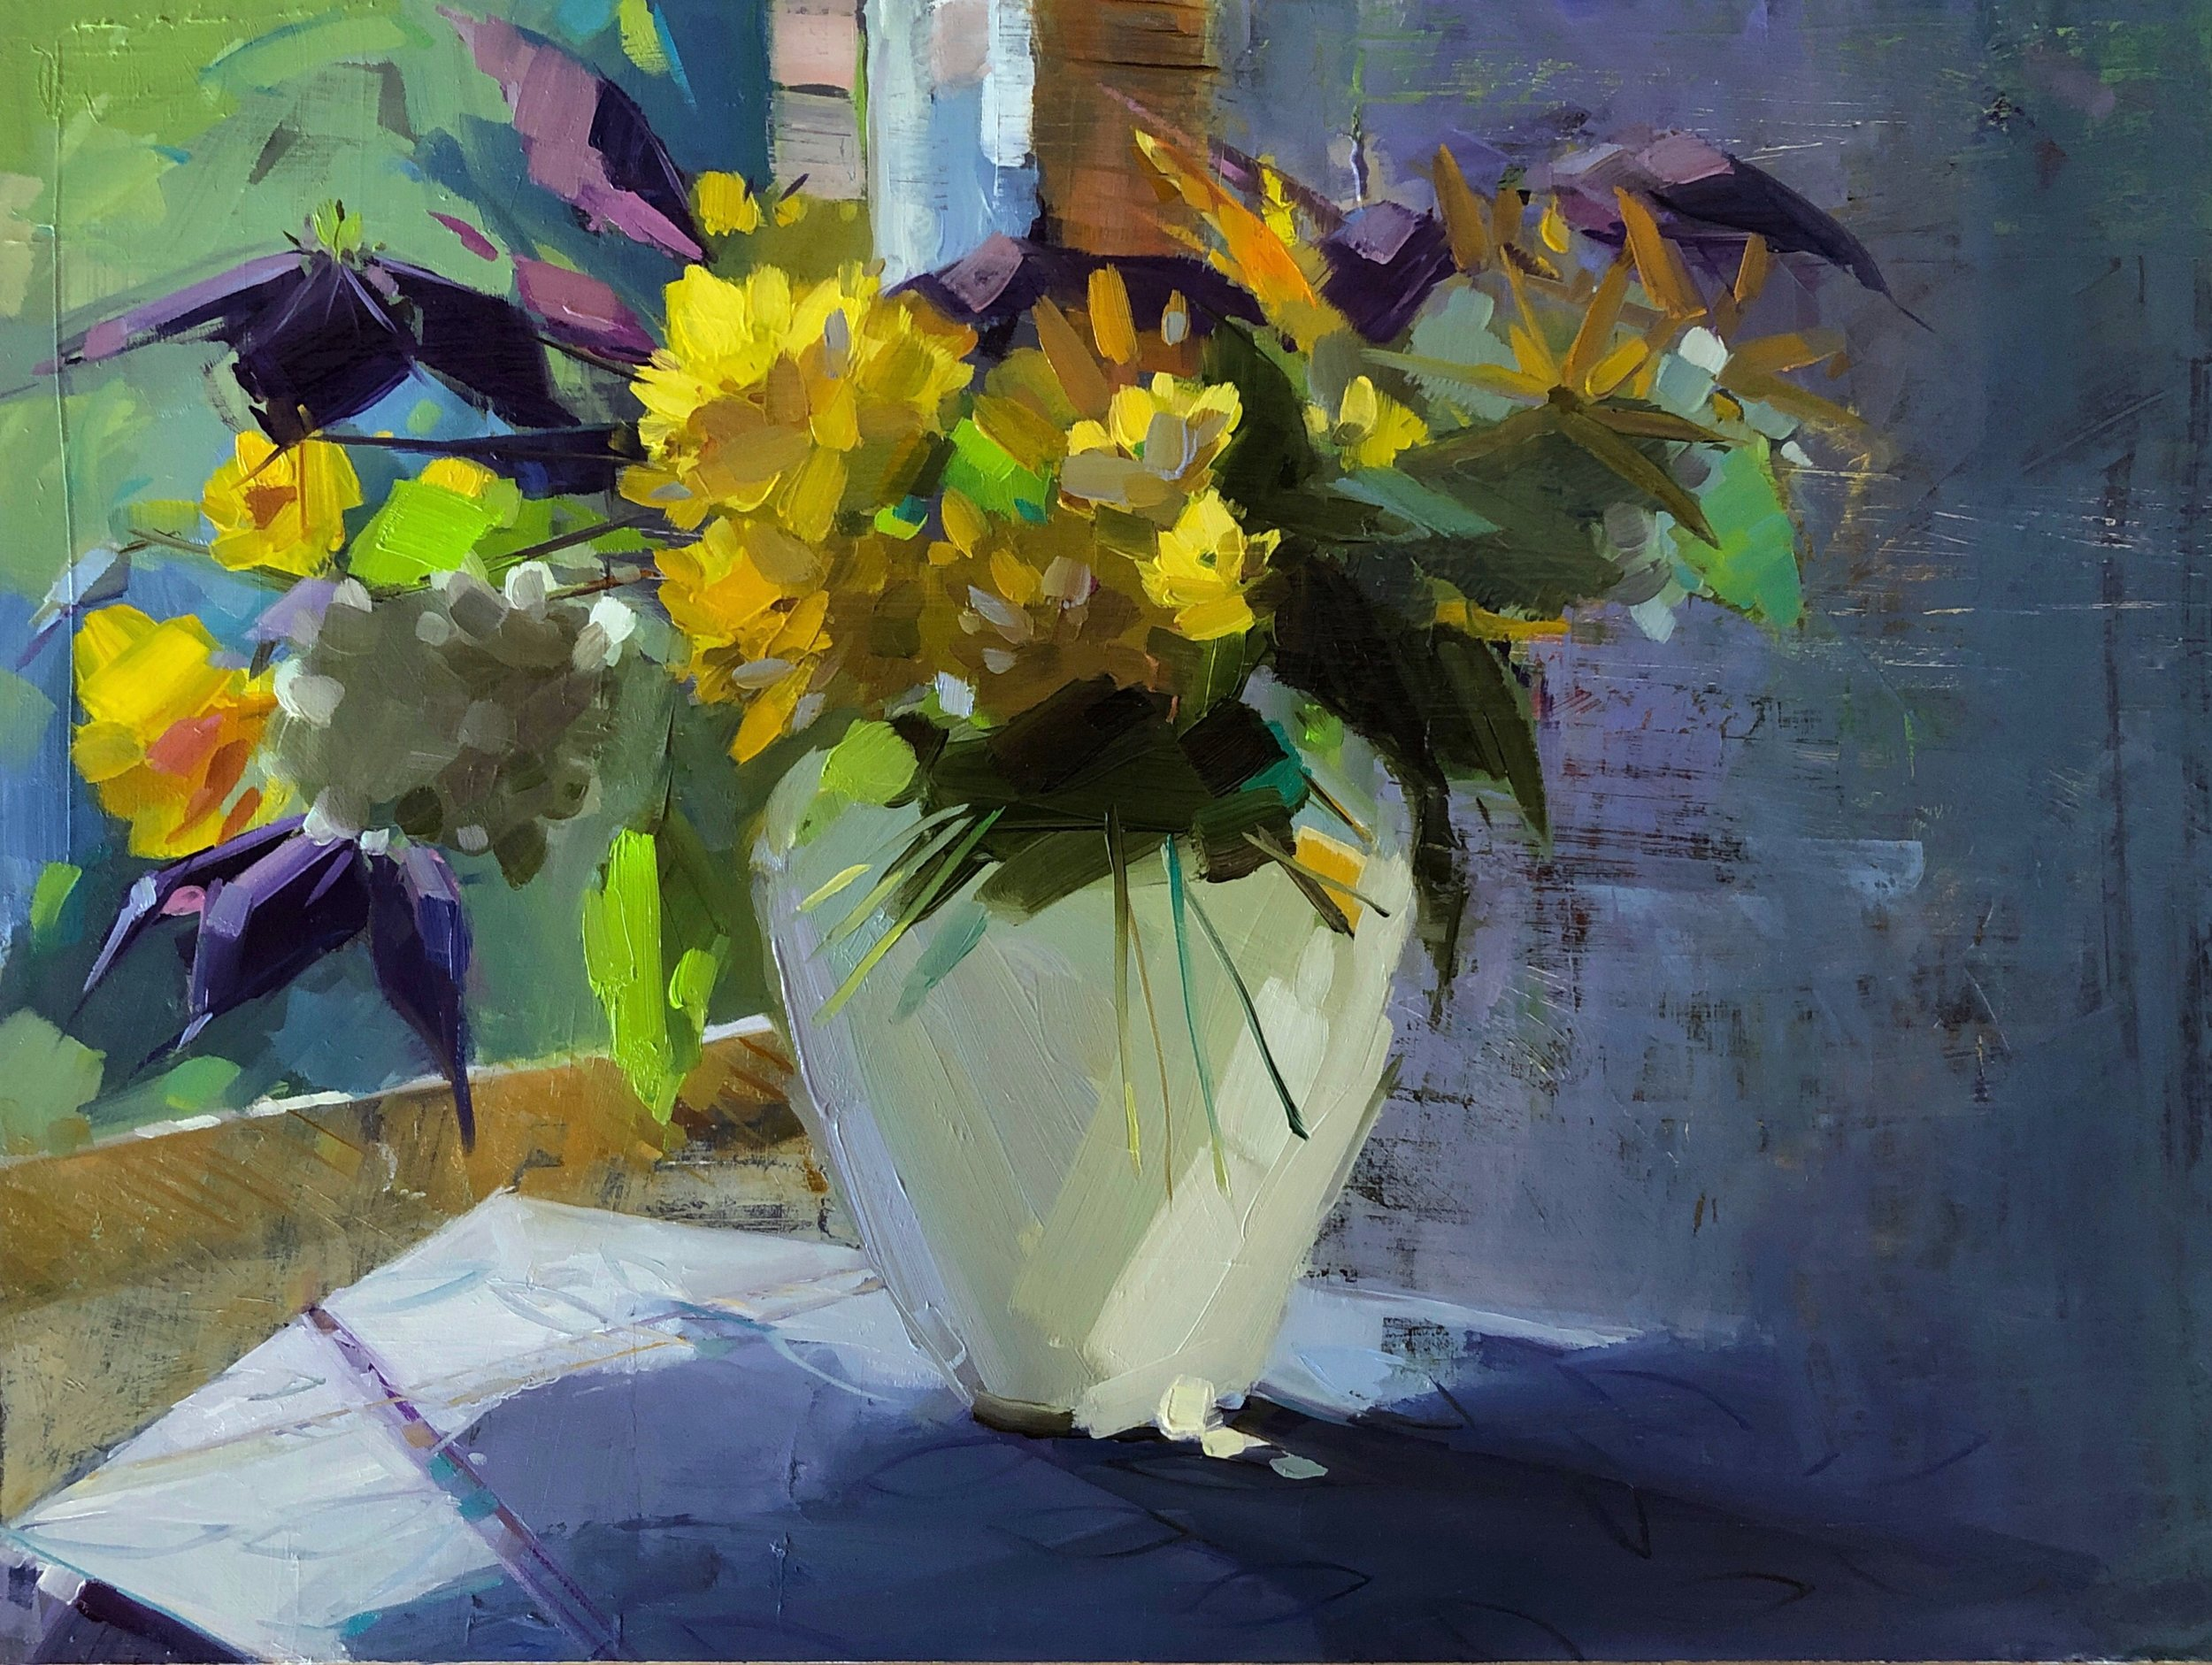 Clematis, Rudbeckia, Heliopsis. 12 x 16, oil on panel.